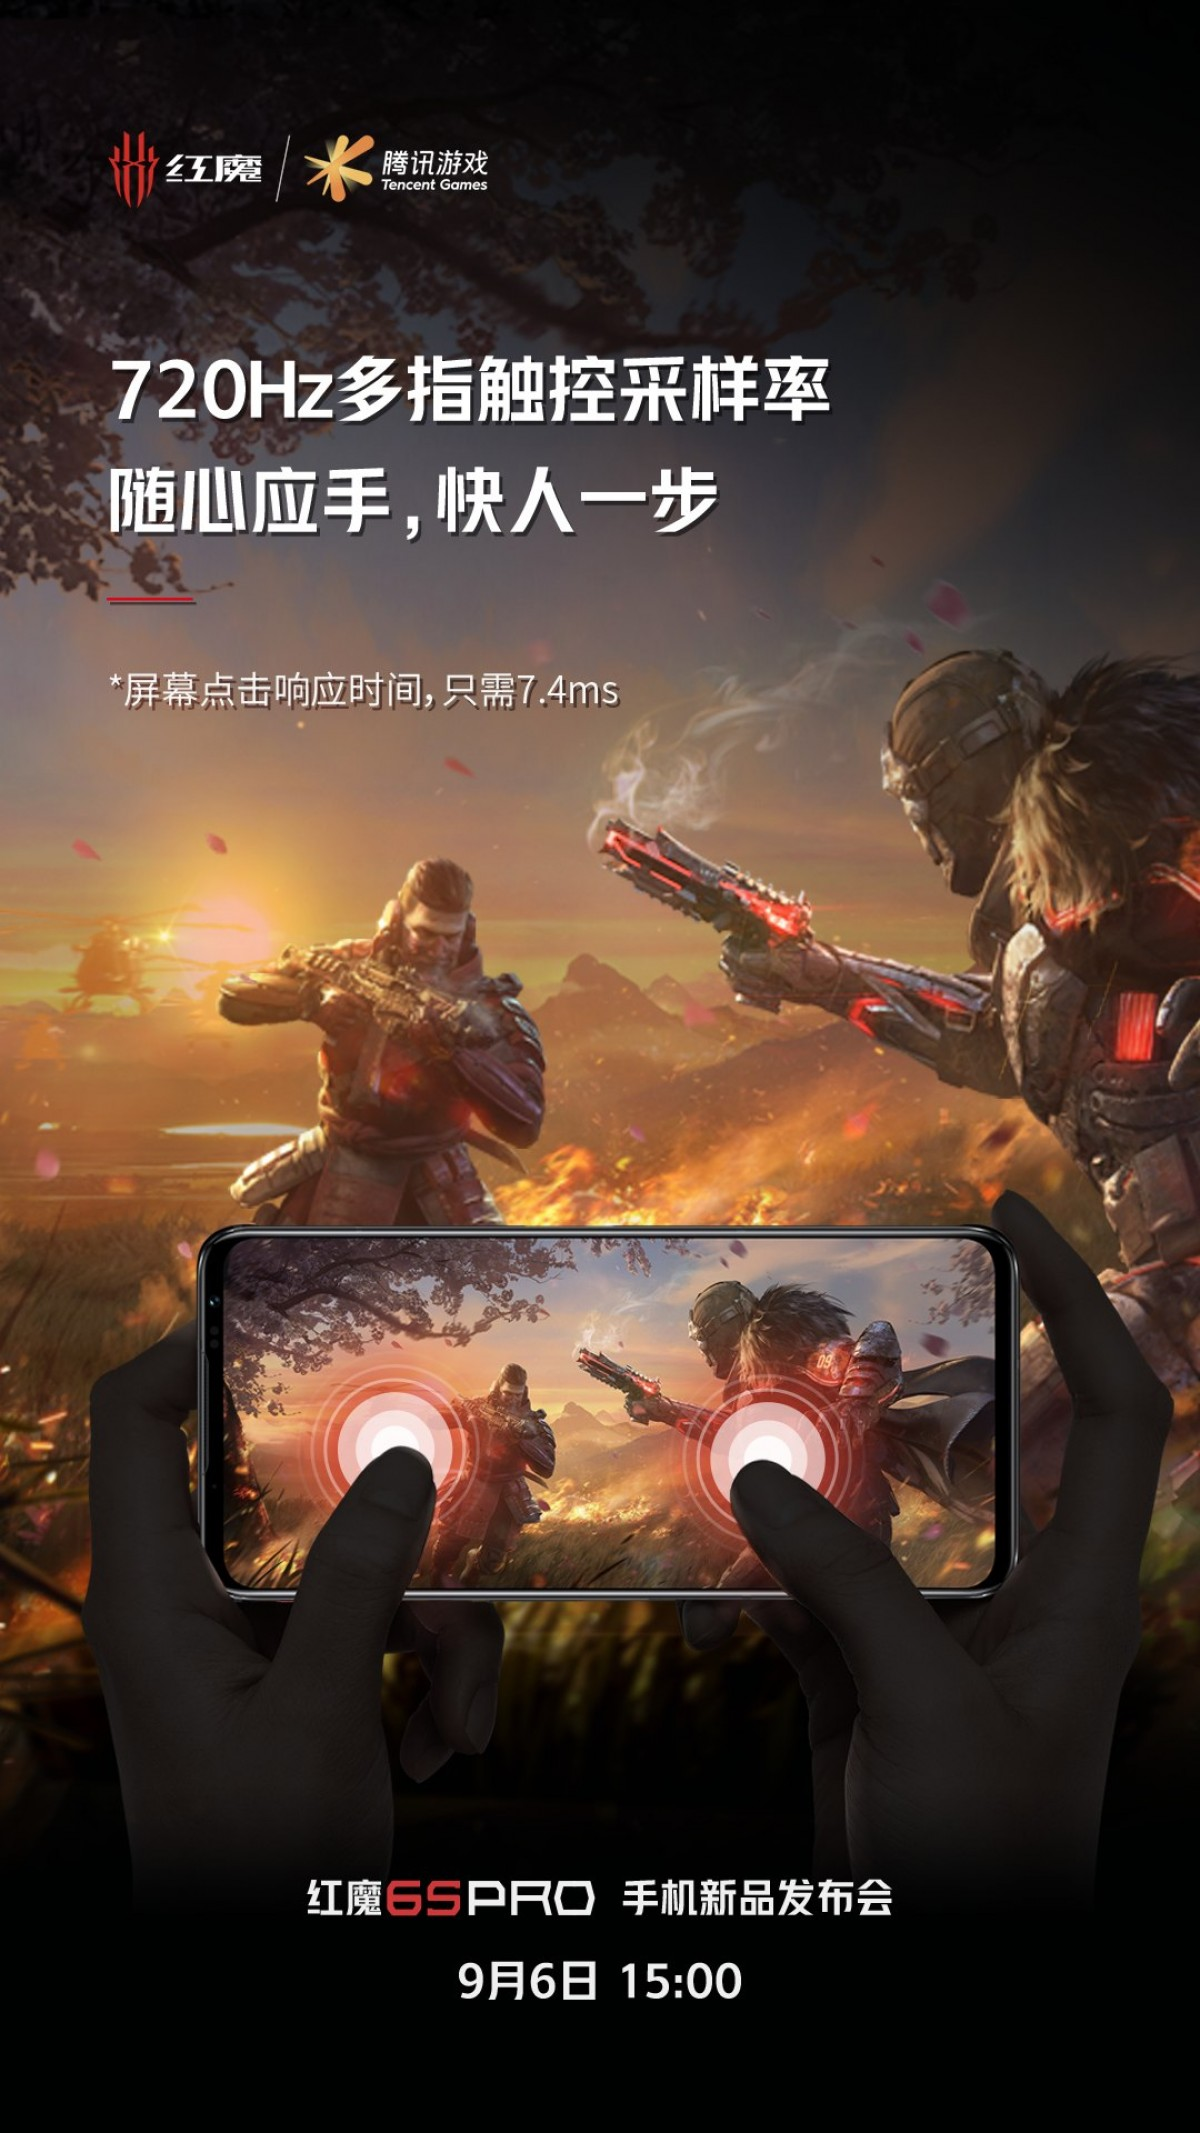 nubia reveals Red Magic 6S Pro will have improved touch sampling and response rate